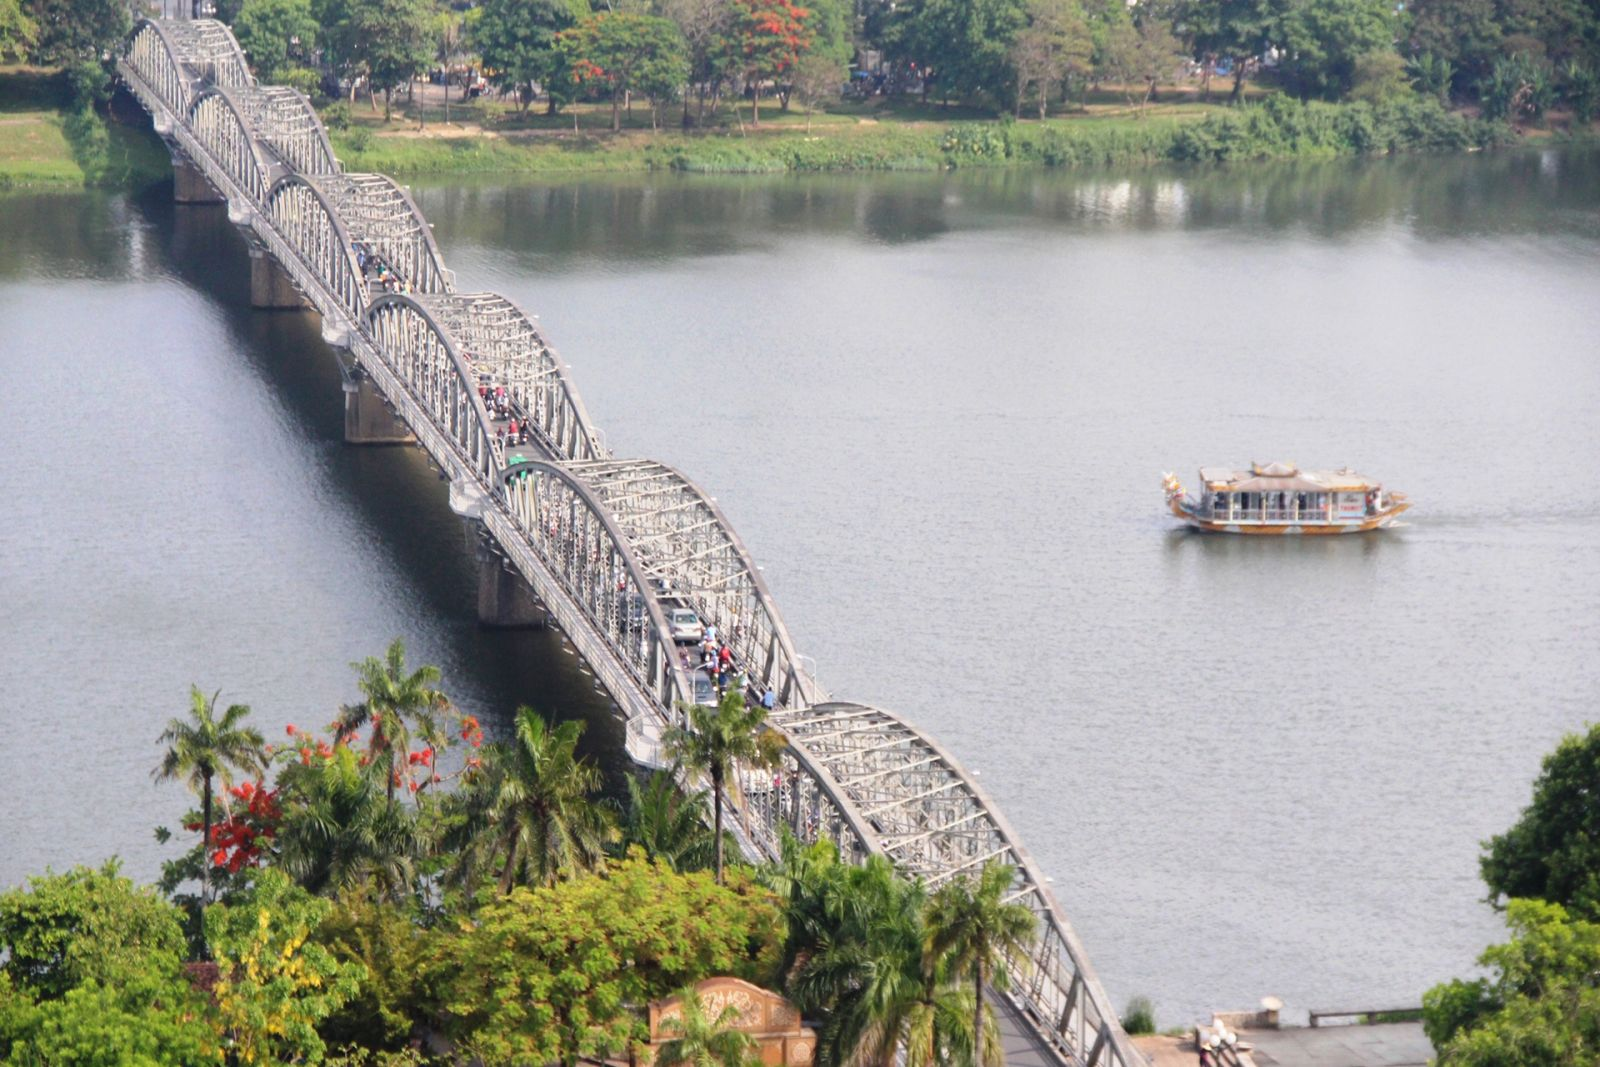 Truong Tien Bridge - 120 years of ups and downs